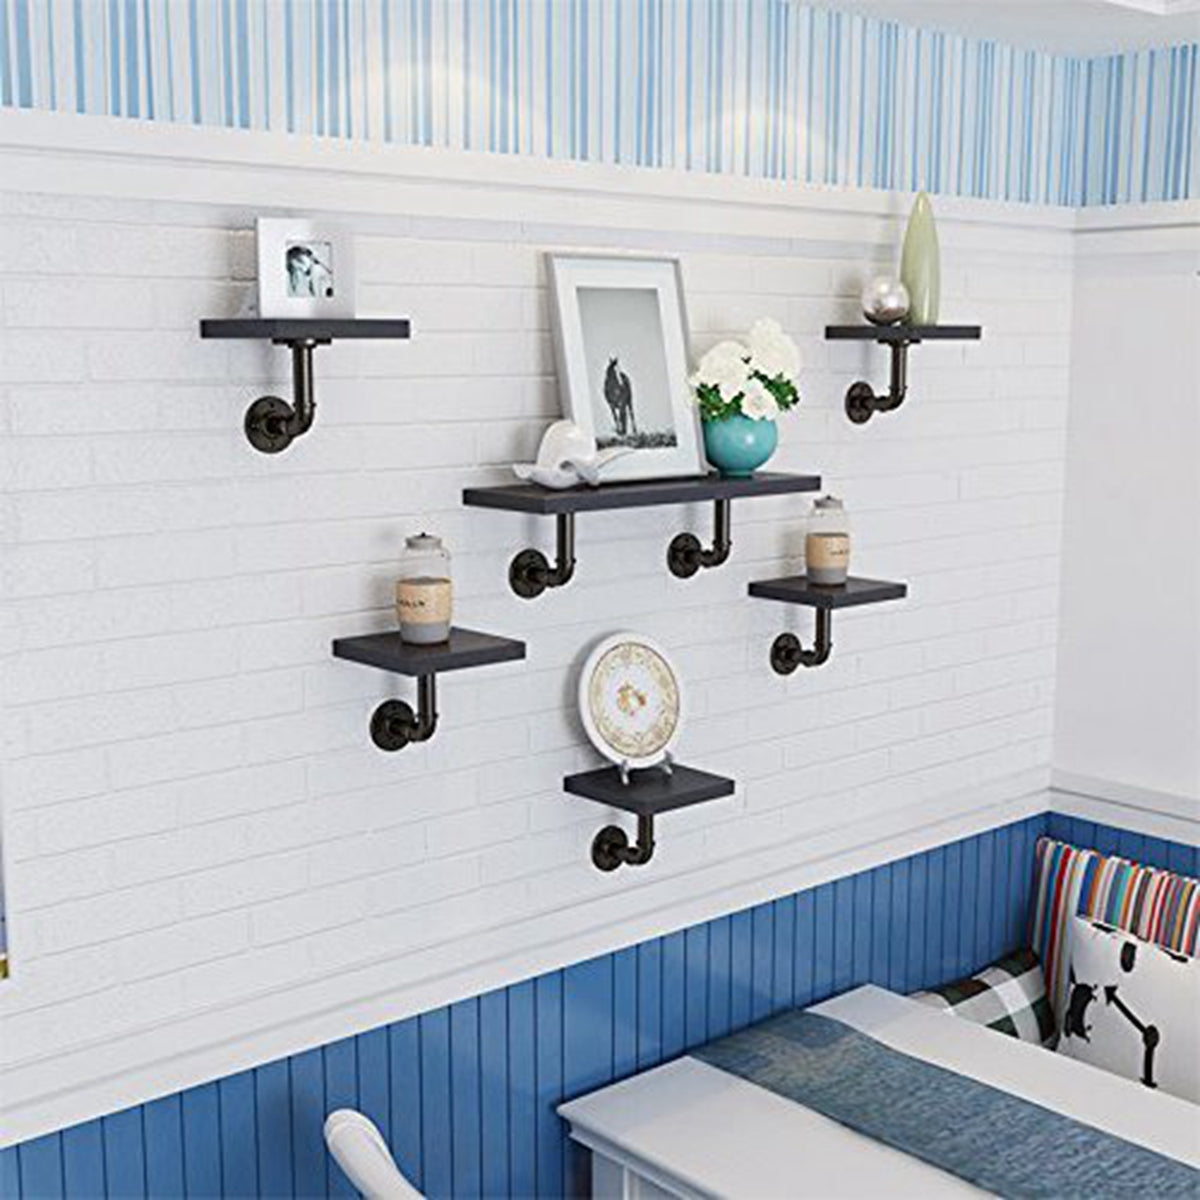 KINGSO 2pcs Household Wall Mounted Shelf Holders Flange Pipe Pipe Shelf Bracket